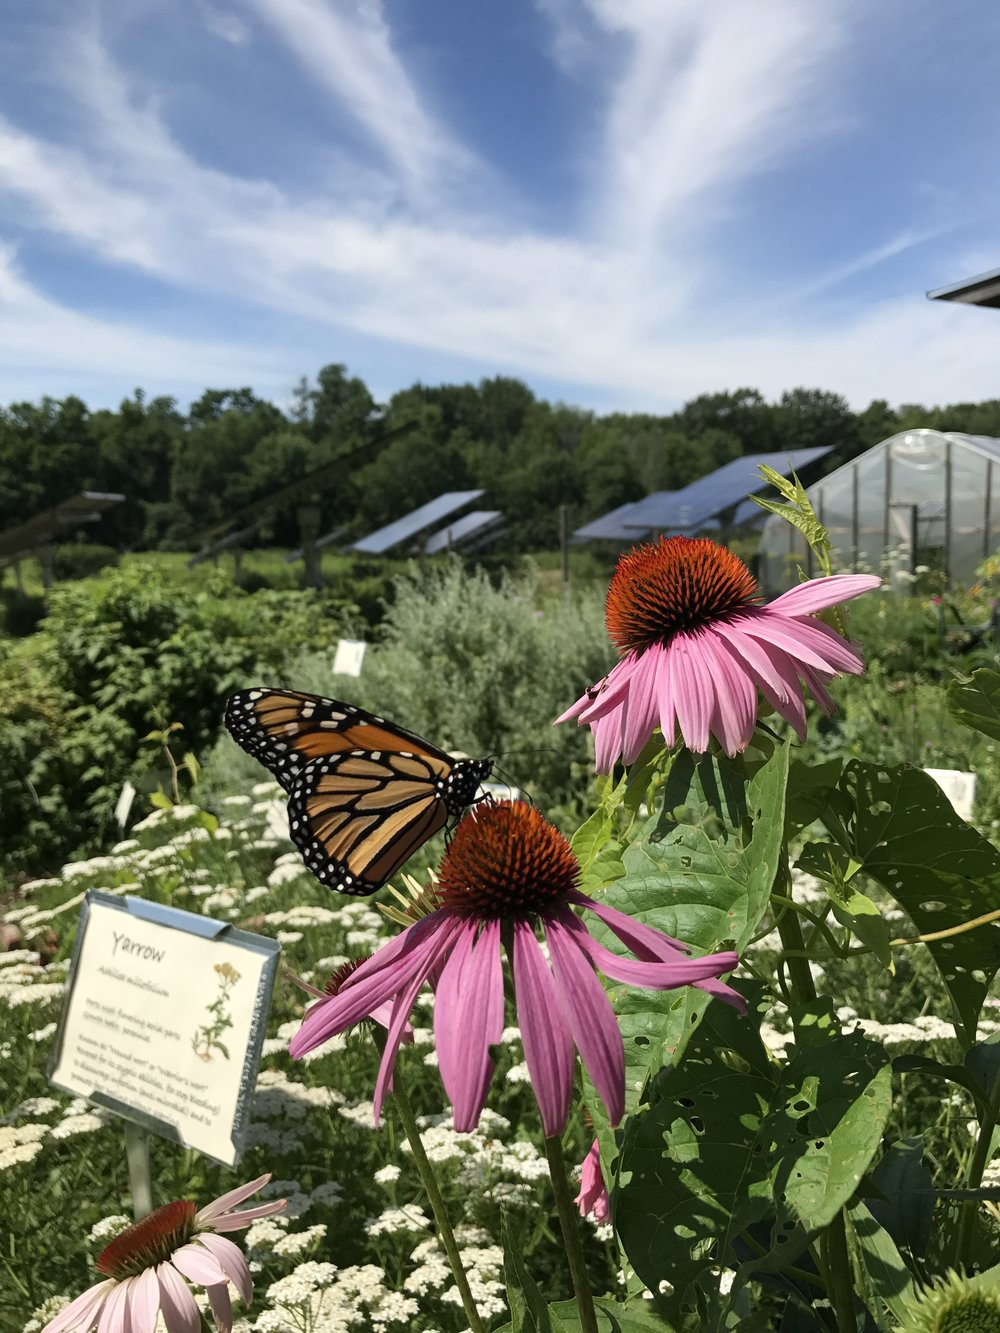 Monarch butterfly resting on echinacea at the Rock Point School.